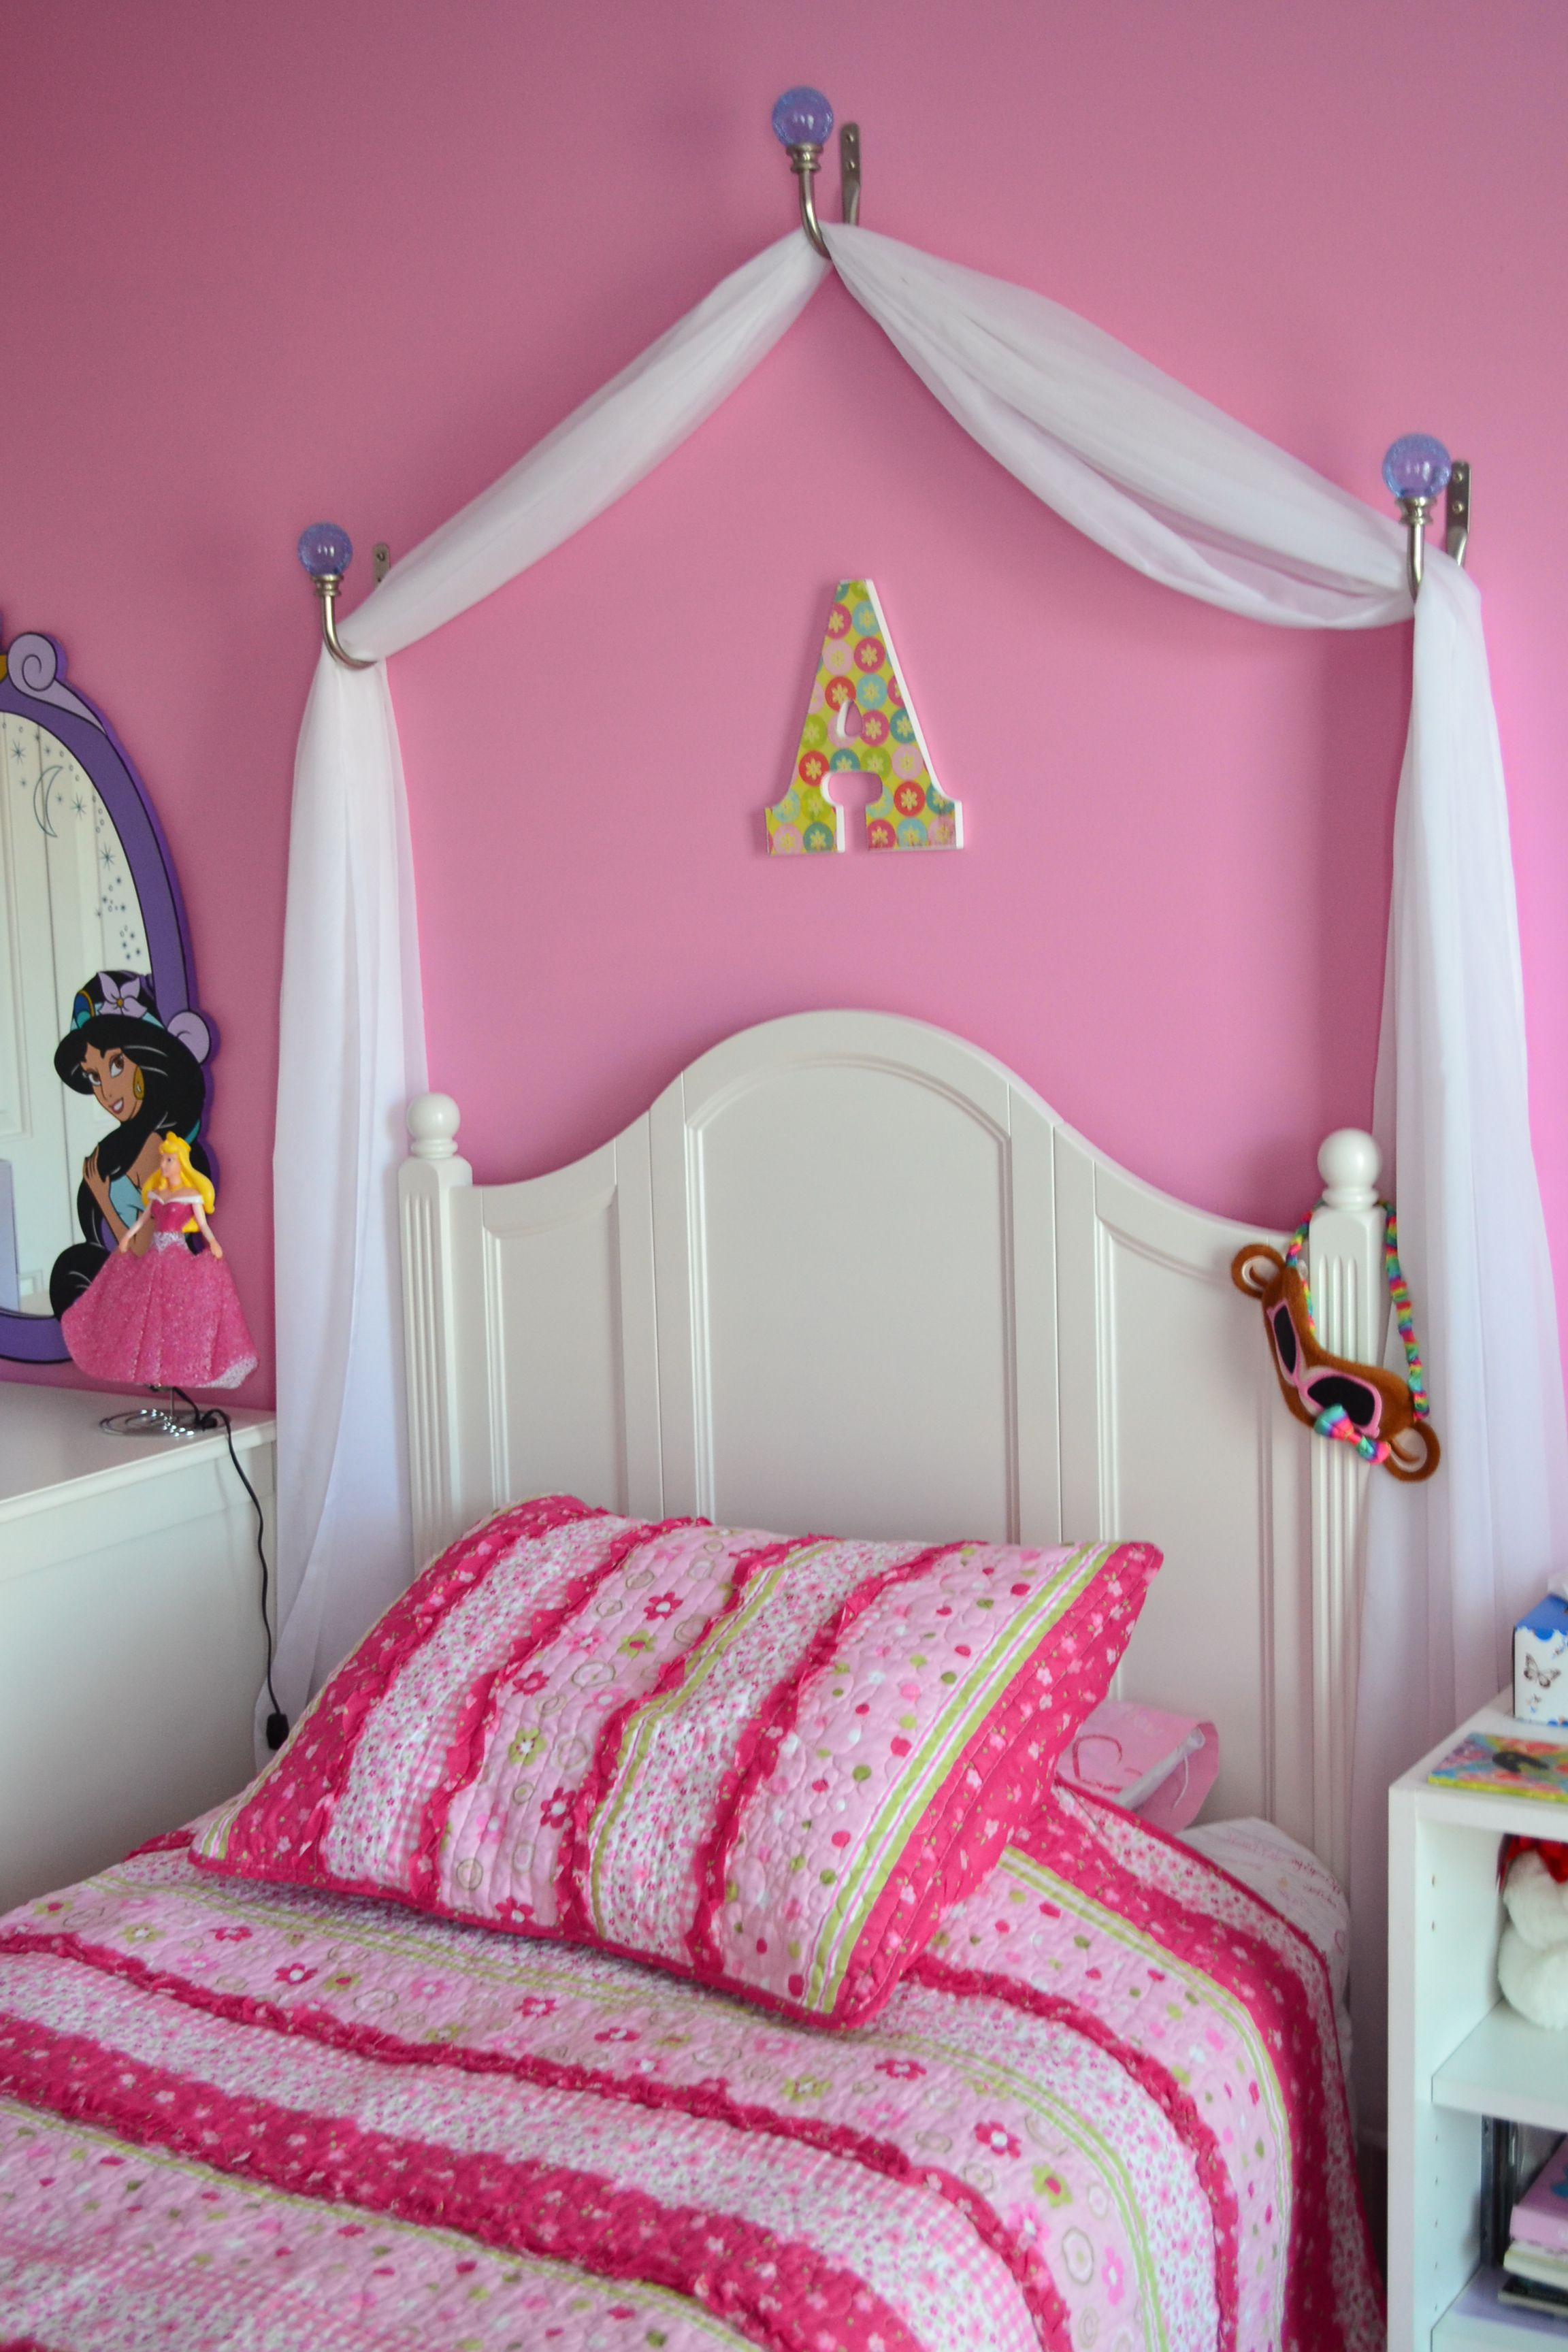 Canopy bed curtains for girls - Homemade Canopy Bed The Canopy Above Her Bed Was Constructed From Curtain Pulls And A